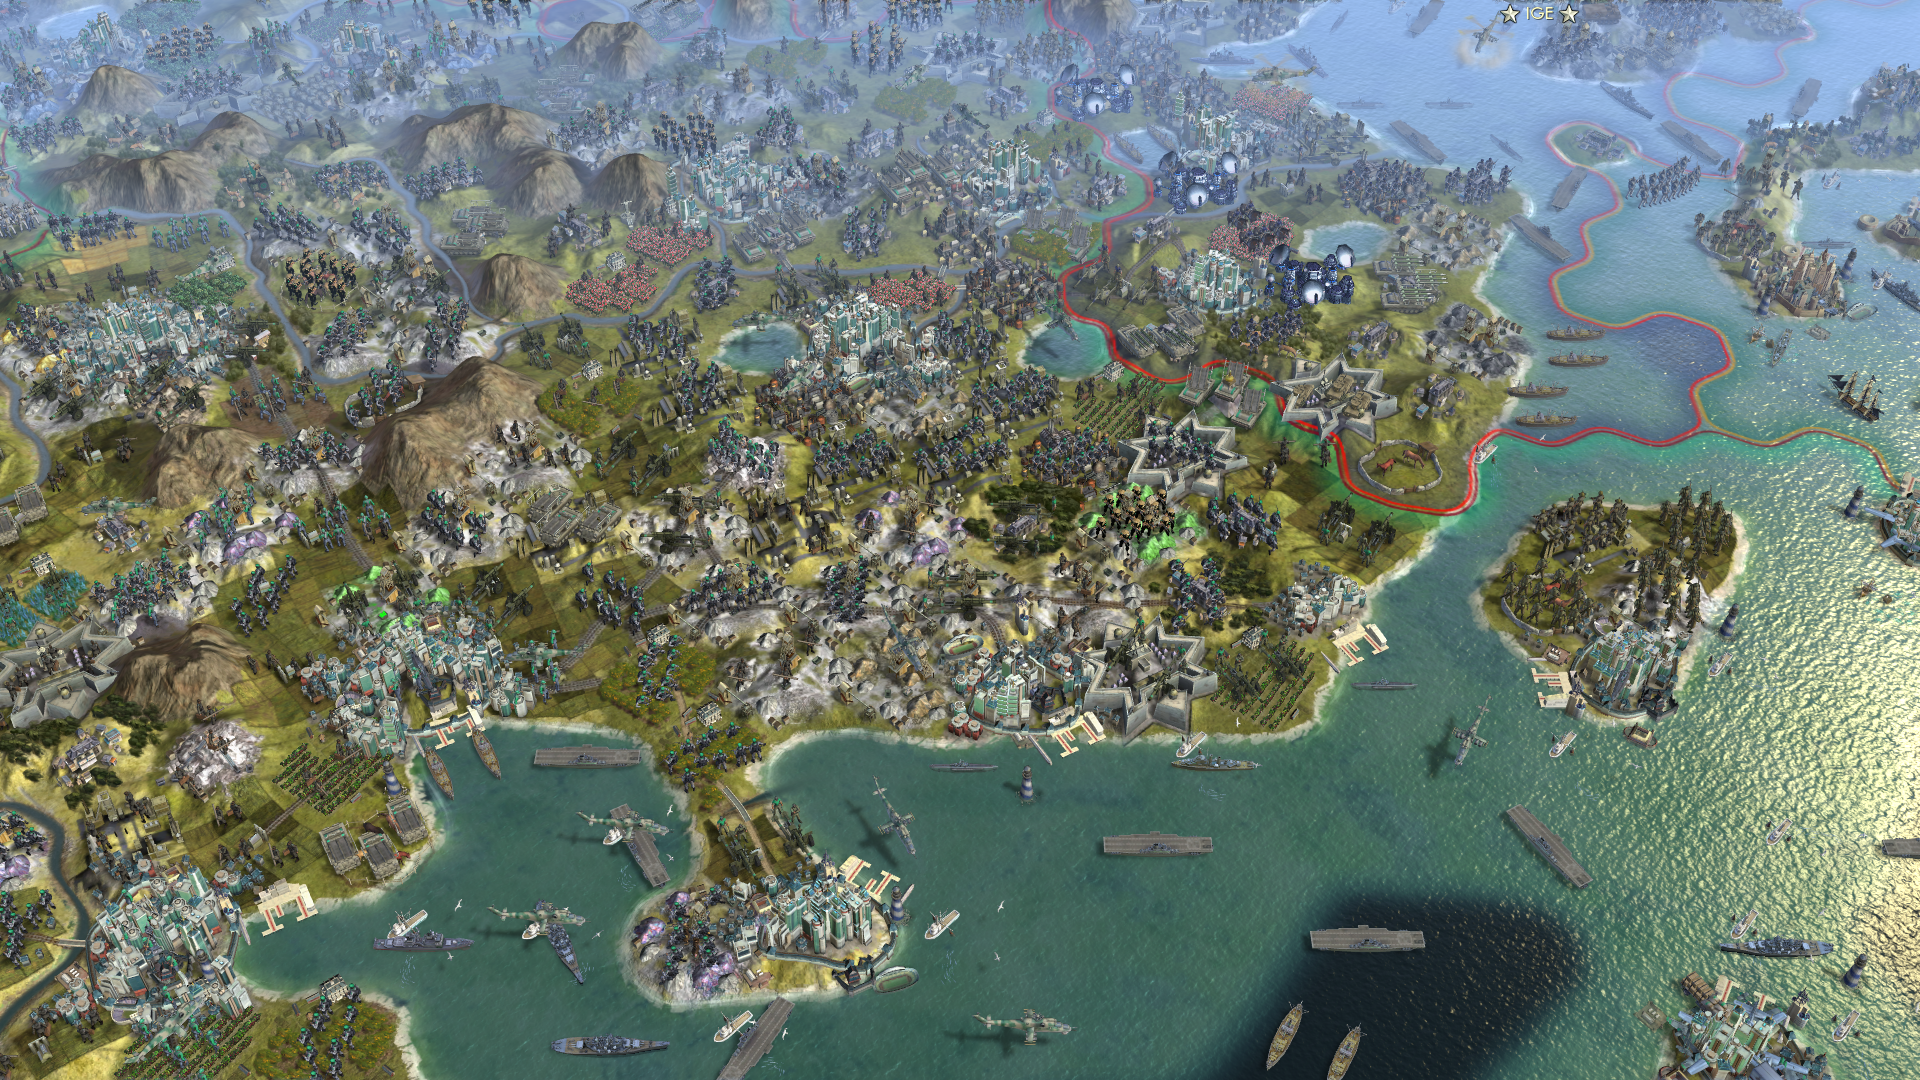 What A 61-Player Civilization V Map Looks Like Without The ... Civ Maps on dungeon magazine maps, swtor maps, civilization 5 maps, civ beyond earth maps, cod 5 maps, rpg maker vx ace maps, person-centered planning maps, bard's tale maps, high quality maps, googel maps, przewalski's horse maps, civ 4 maps, bureau of land management maps, classic d&d maps, civ 3 downloadable maps, spanish speaking maps, just cause 2 maps, legend of grimrock maps, garry's mod maps,